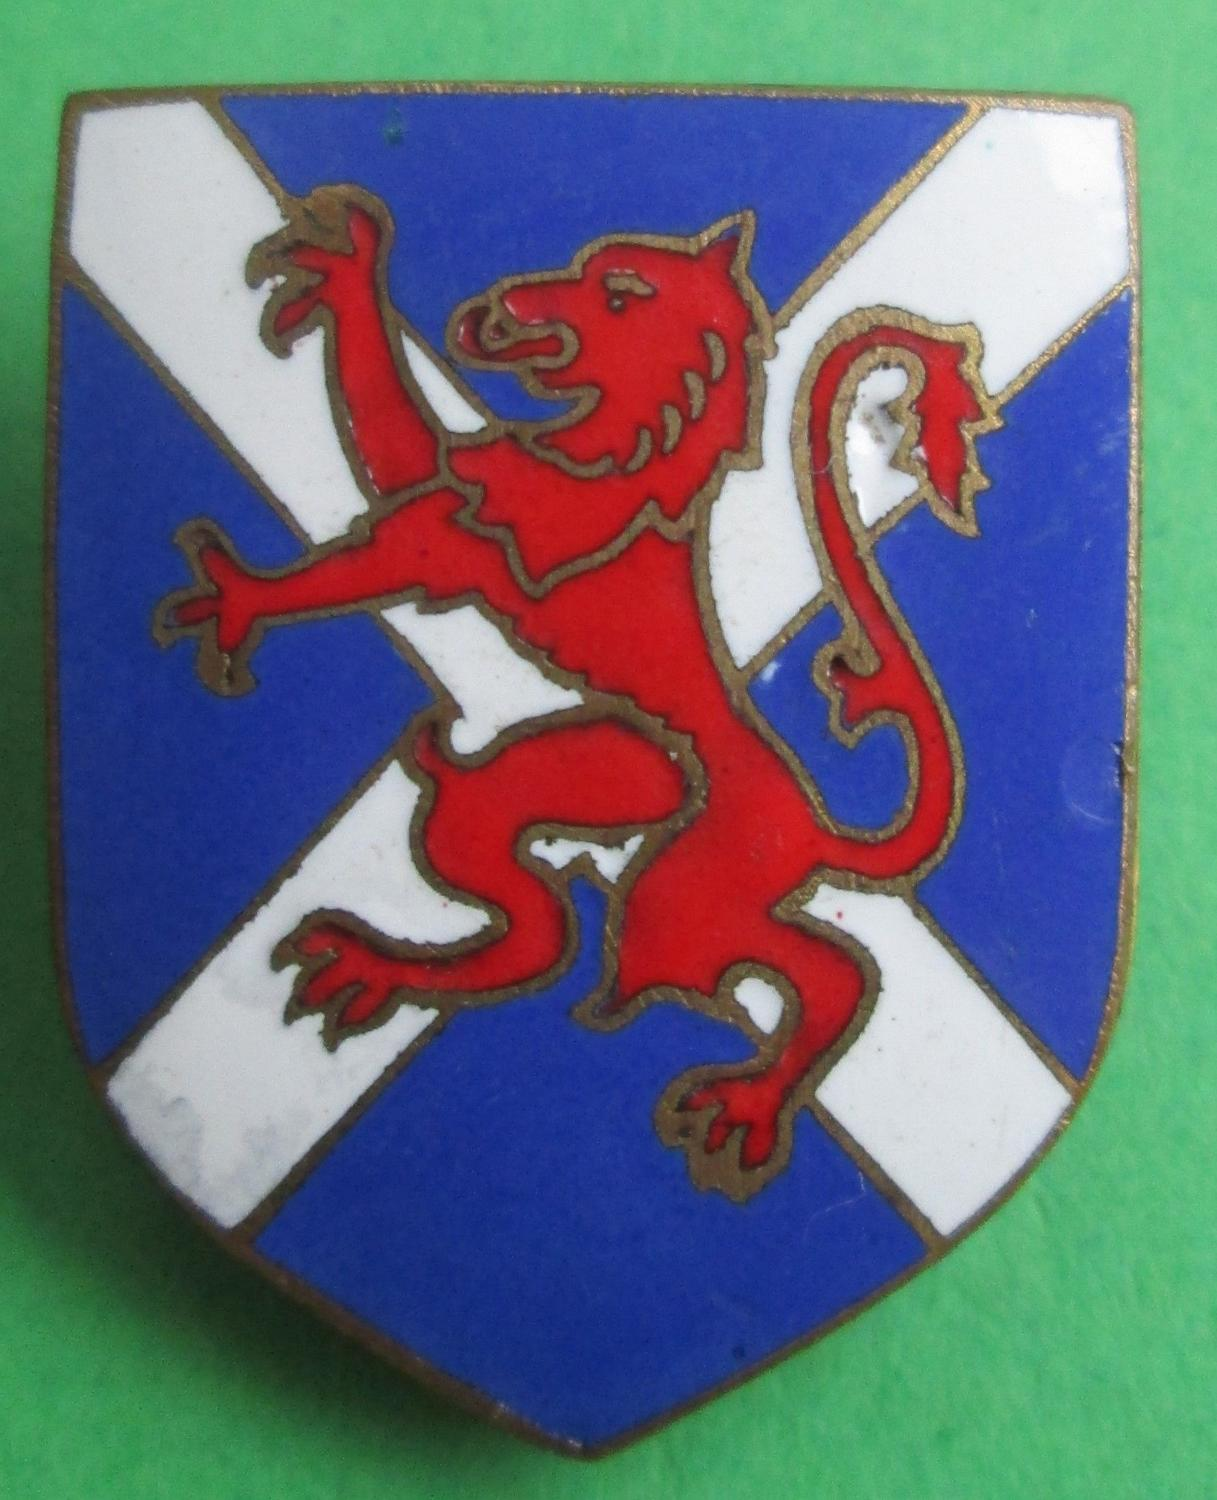 A SCOTTISH EXHIBITION BADGE